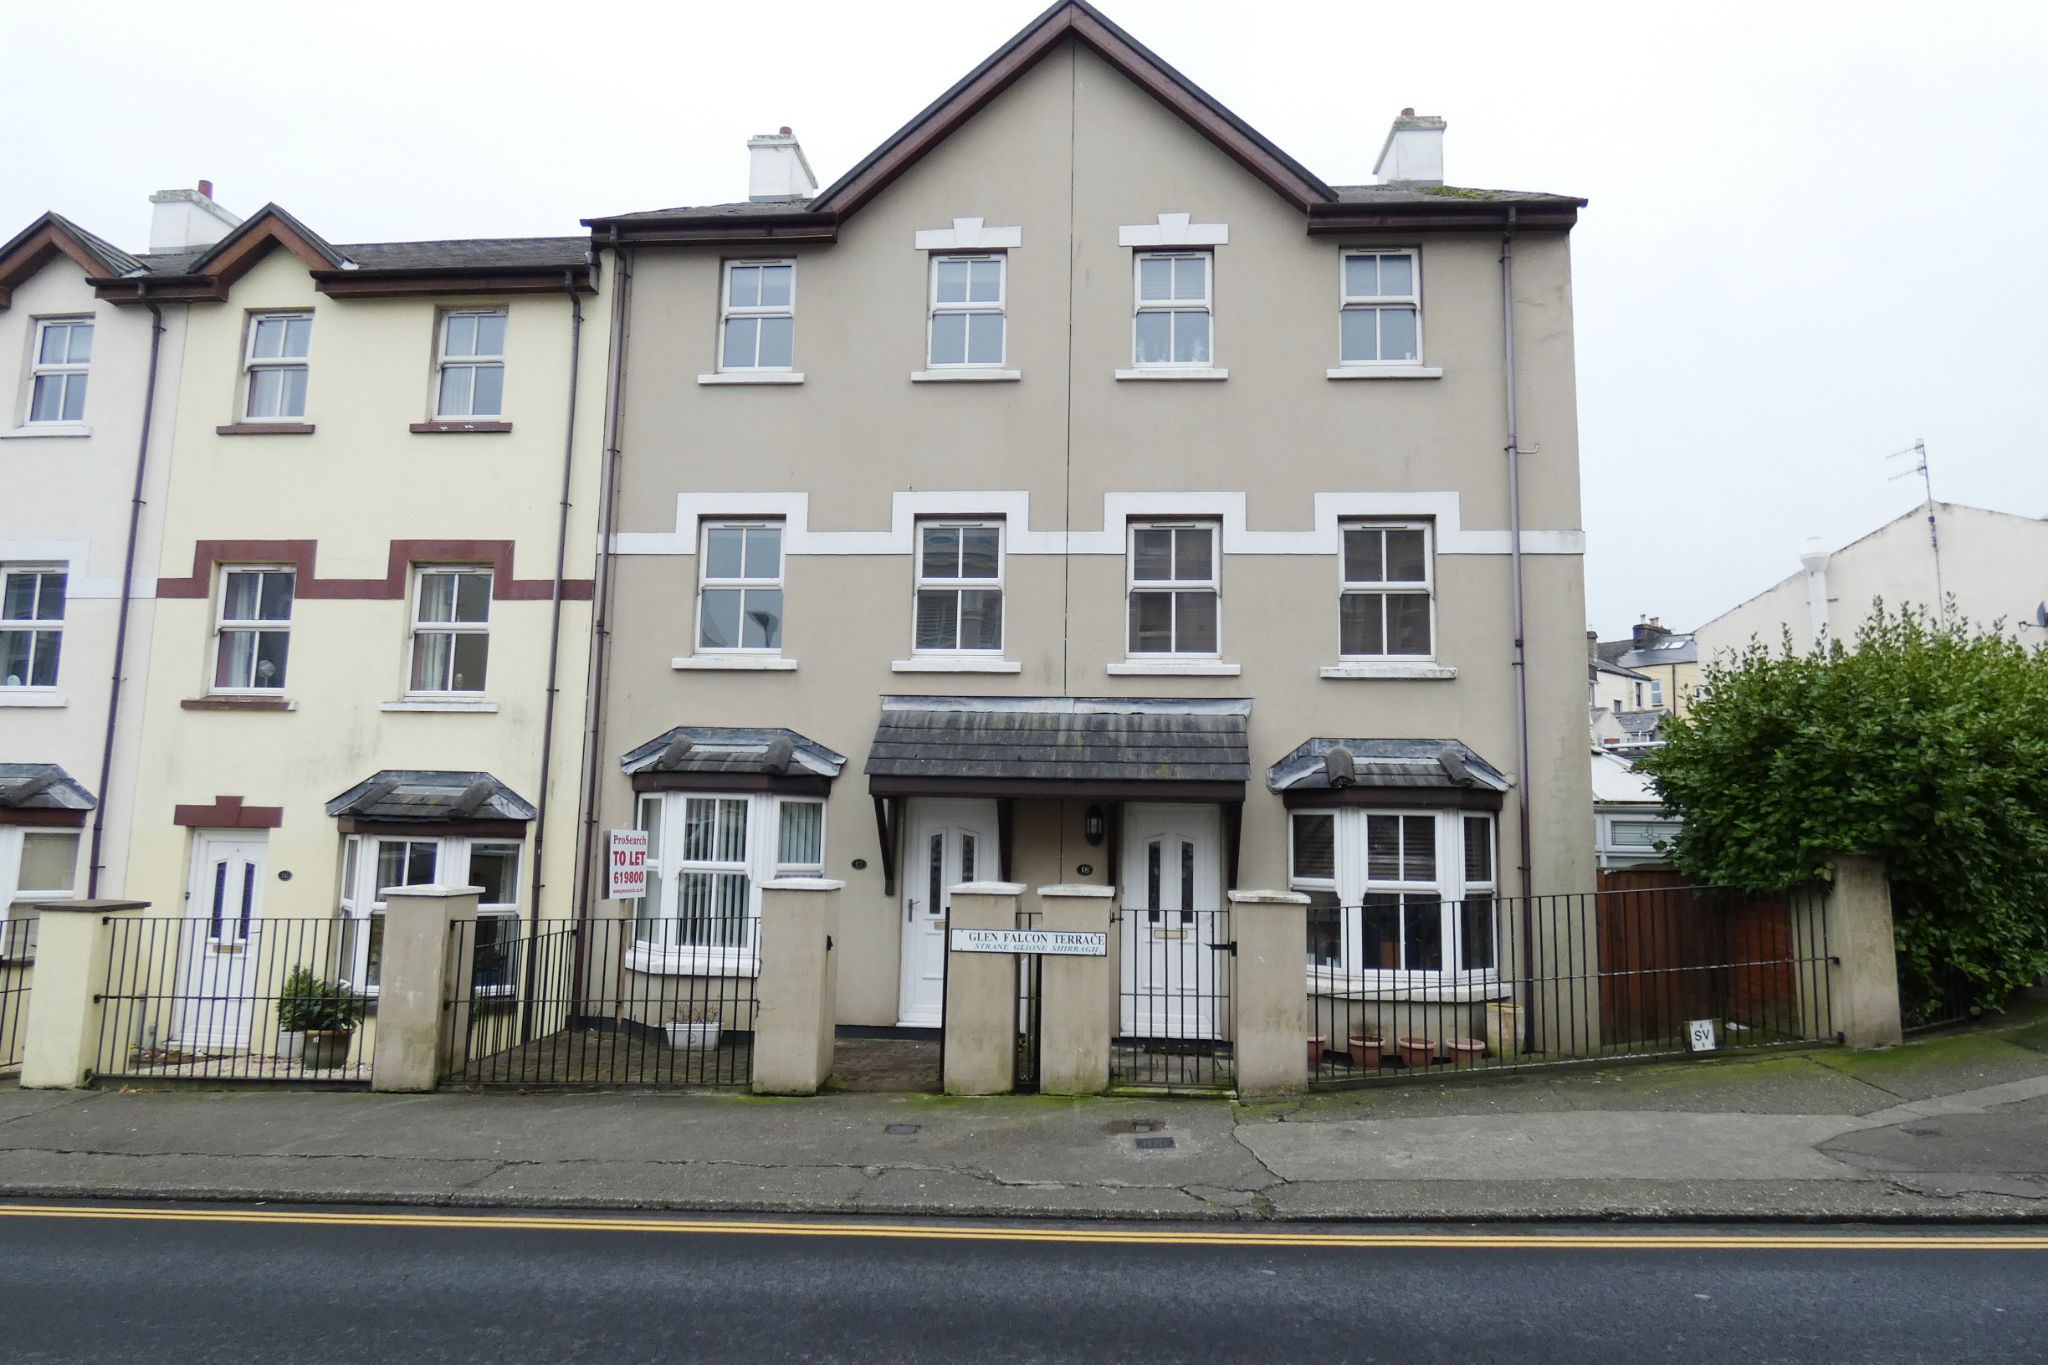 4 bedroom mid terraced house Under Offer in Douglas - Photograph 1